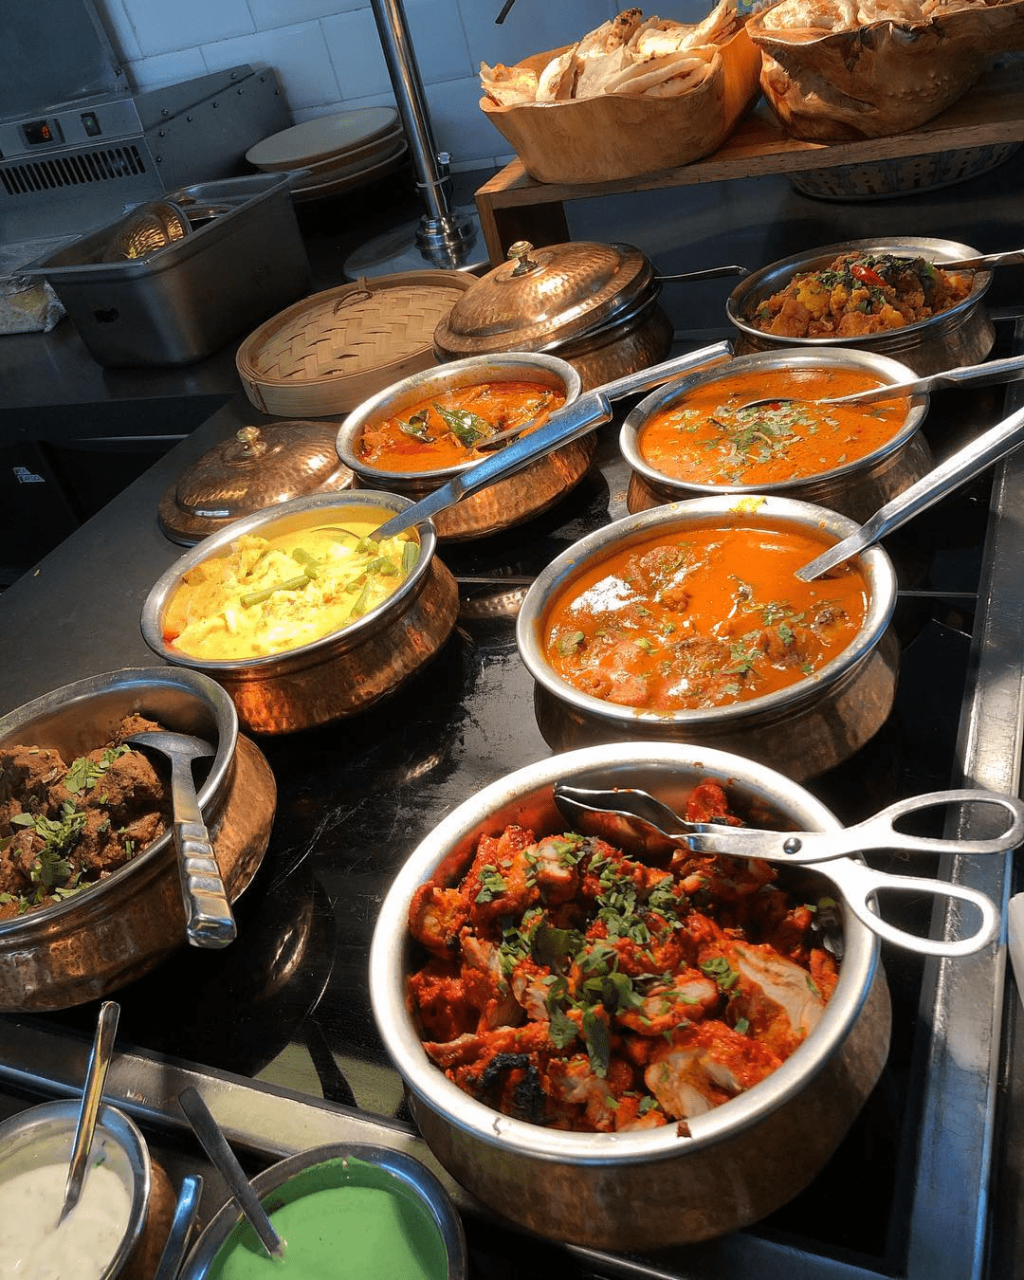 12 Hotel Buffets In Singapore With 1-For-1 Deals To ...